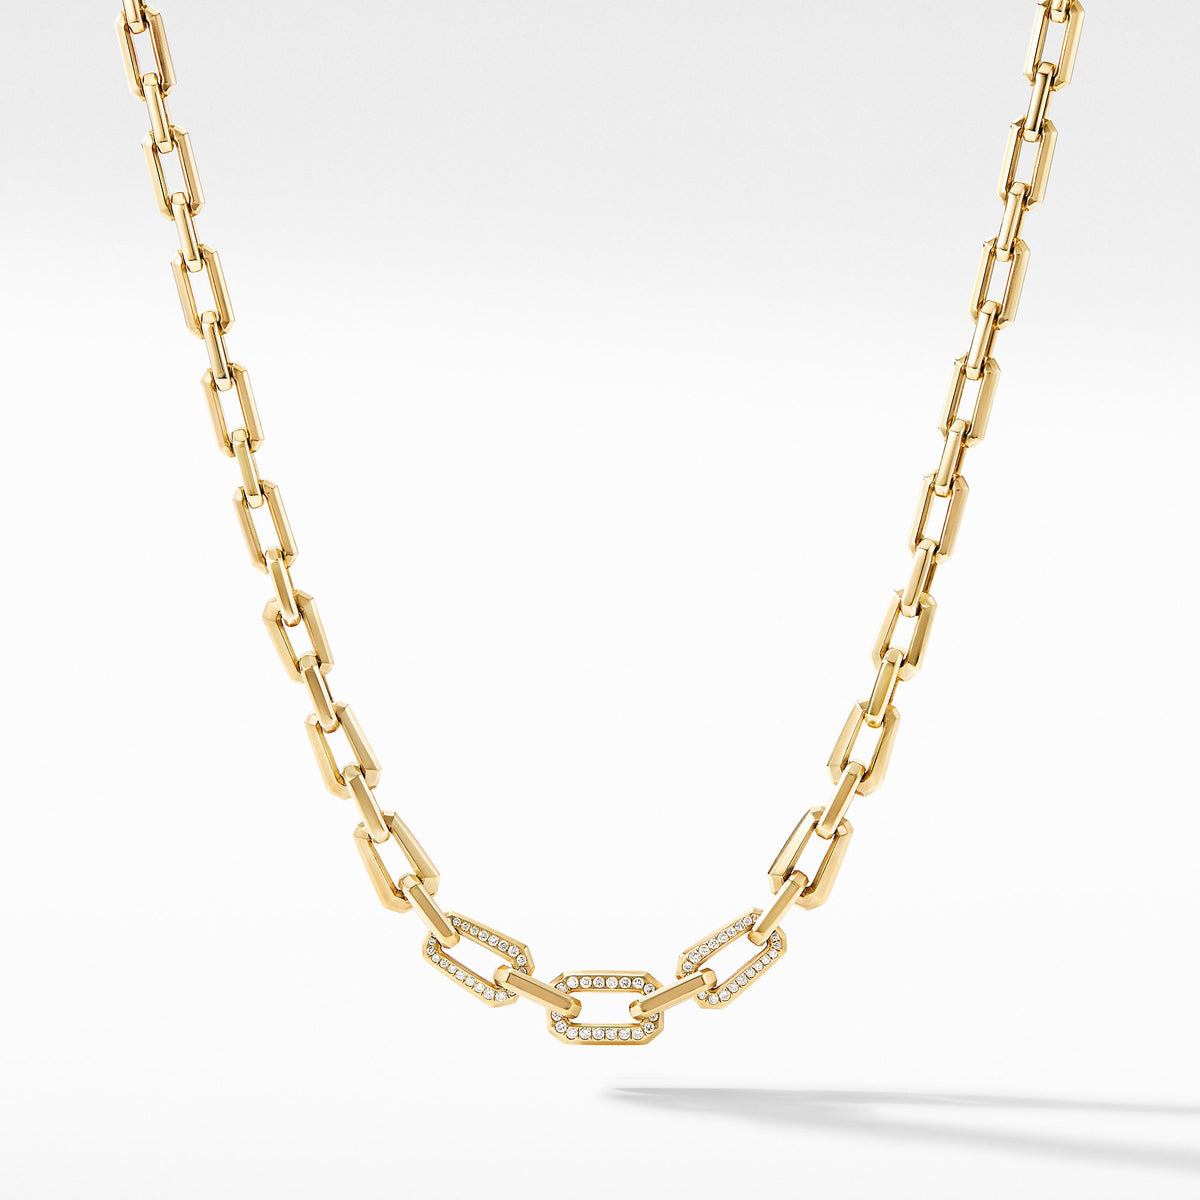 Novella Faceted Chain Necklace in 18K Yellow Gold with Pave Diamonds